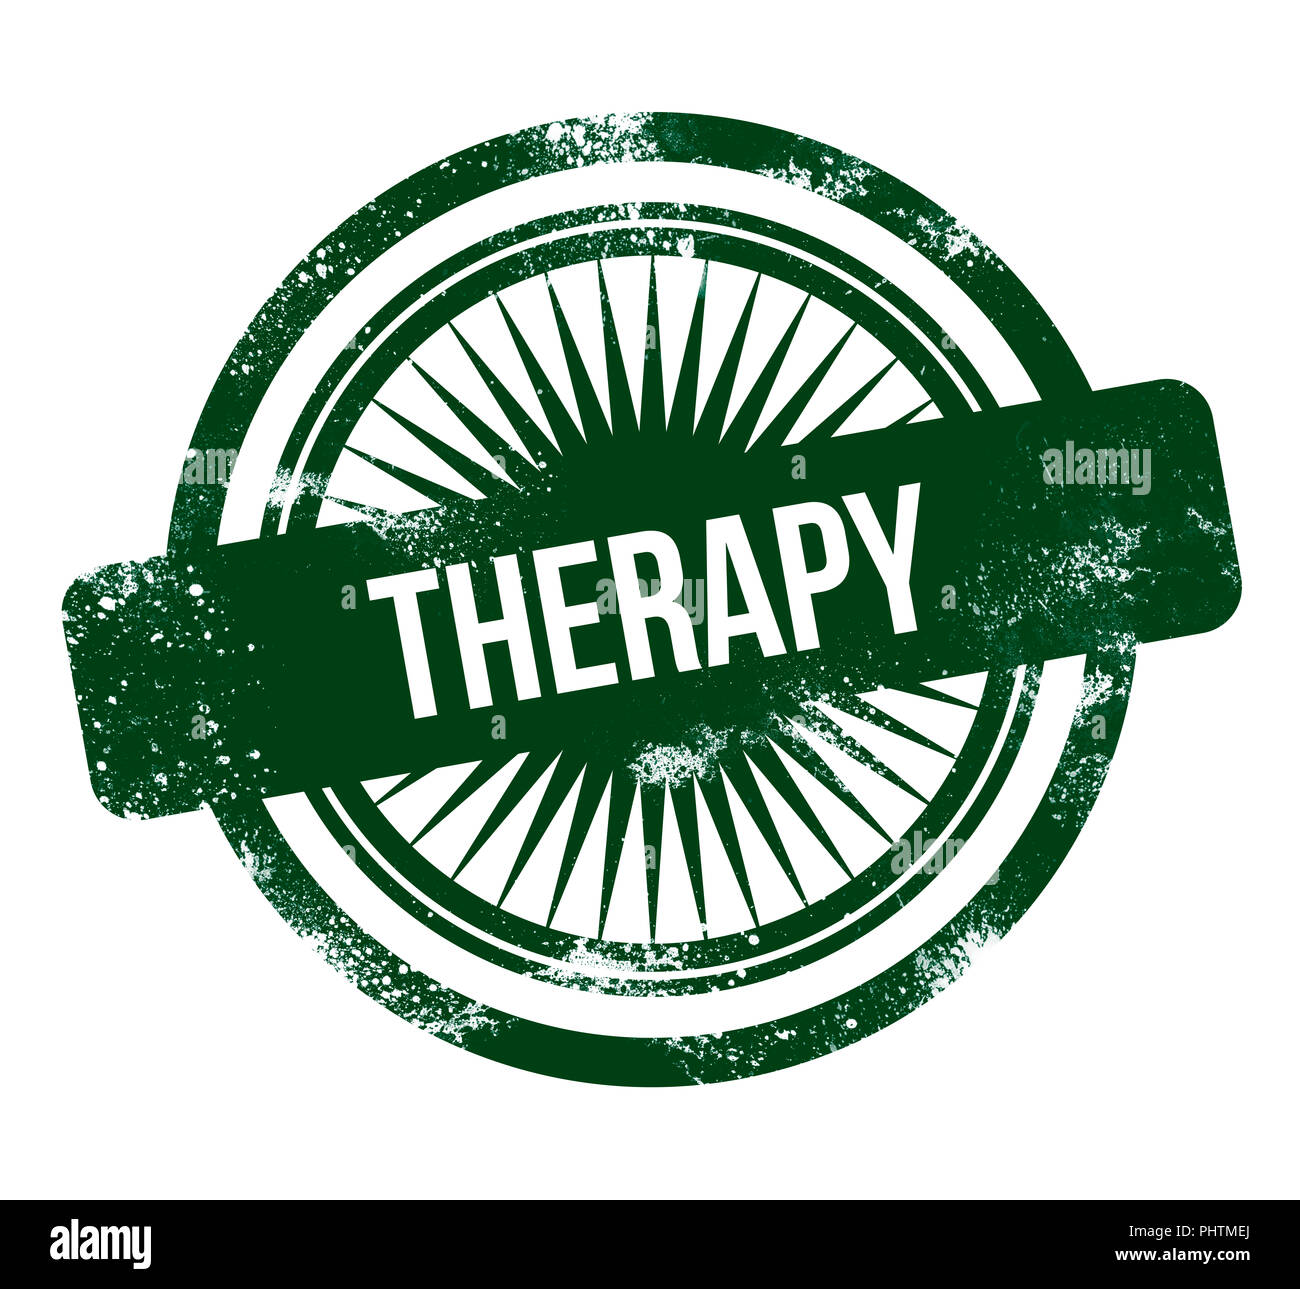 therapy - green grunge stamp - Stock Image